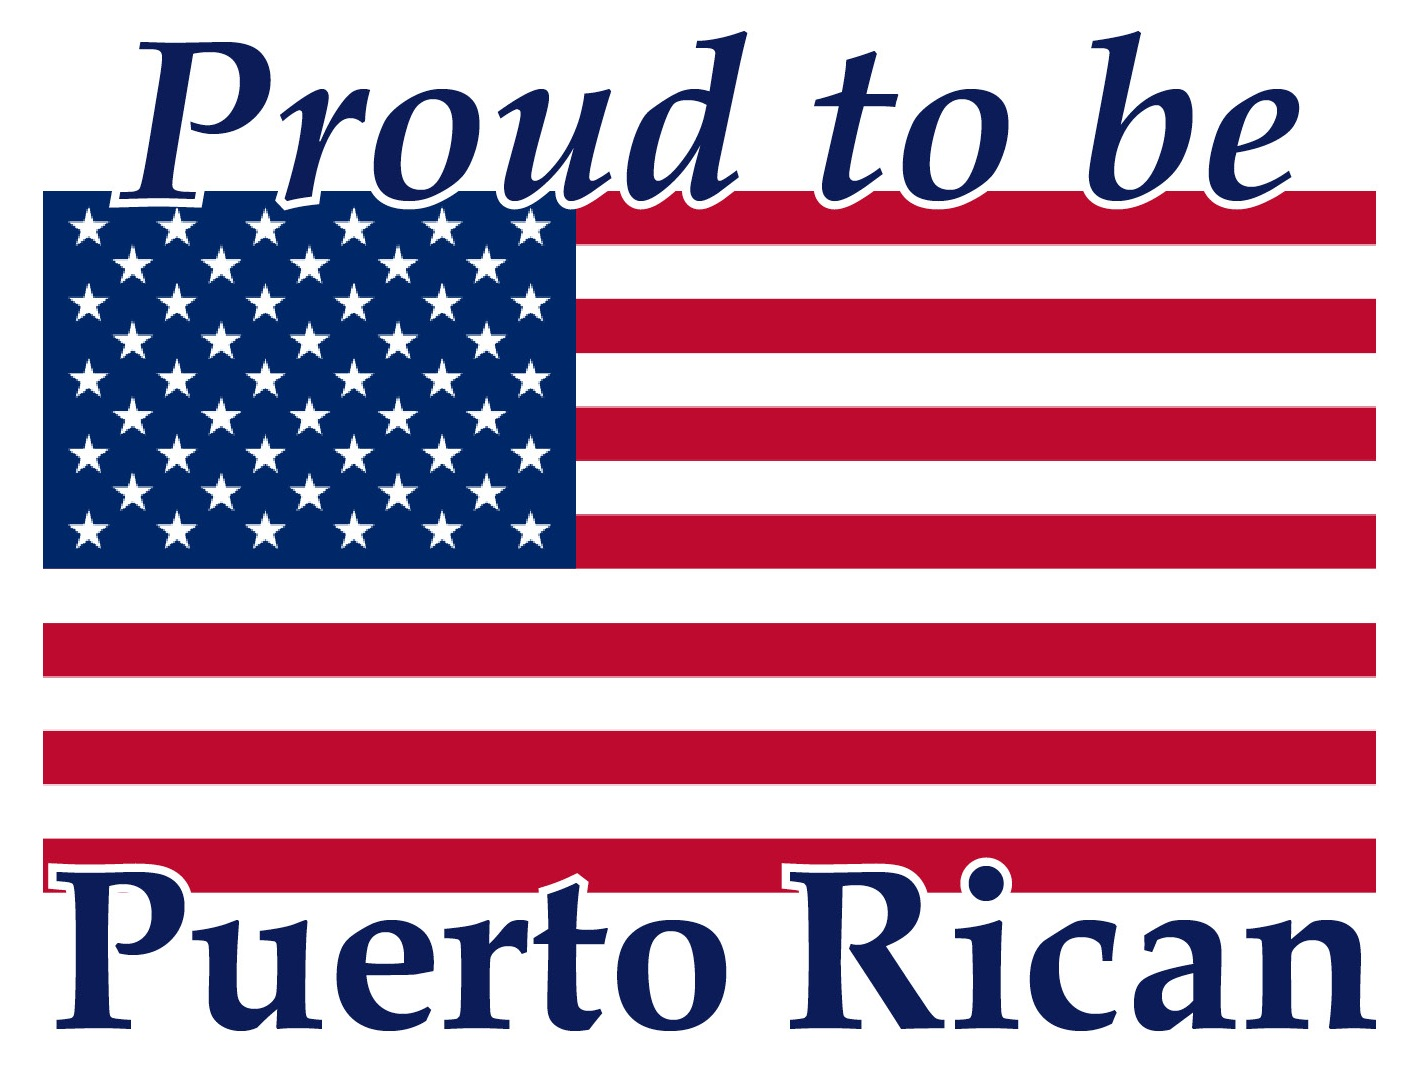 im proud to be puerto rican Best answer: es un orgullo para mi ser puertorriqueño/a  proud to be puerto rican  it would be estoy orgulloso de ser puerto riqueno ( you can also say borcoua, which is an ancient indian name for pr you can also say tengo el orgullo de ser puertorriqueno hope this helps  estoy orgulloso de ser puertoriqueno is im proud to be.